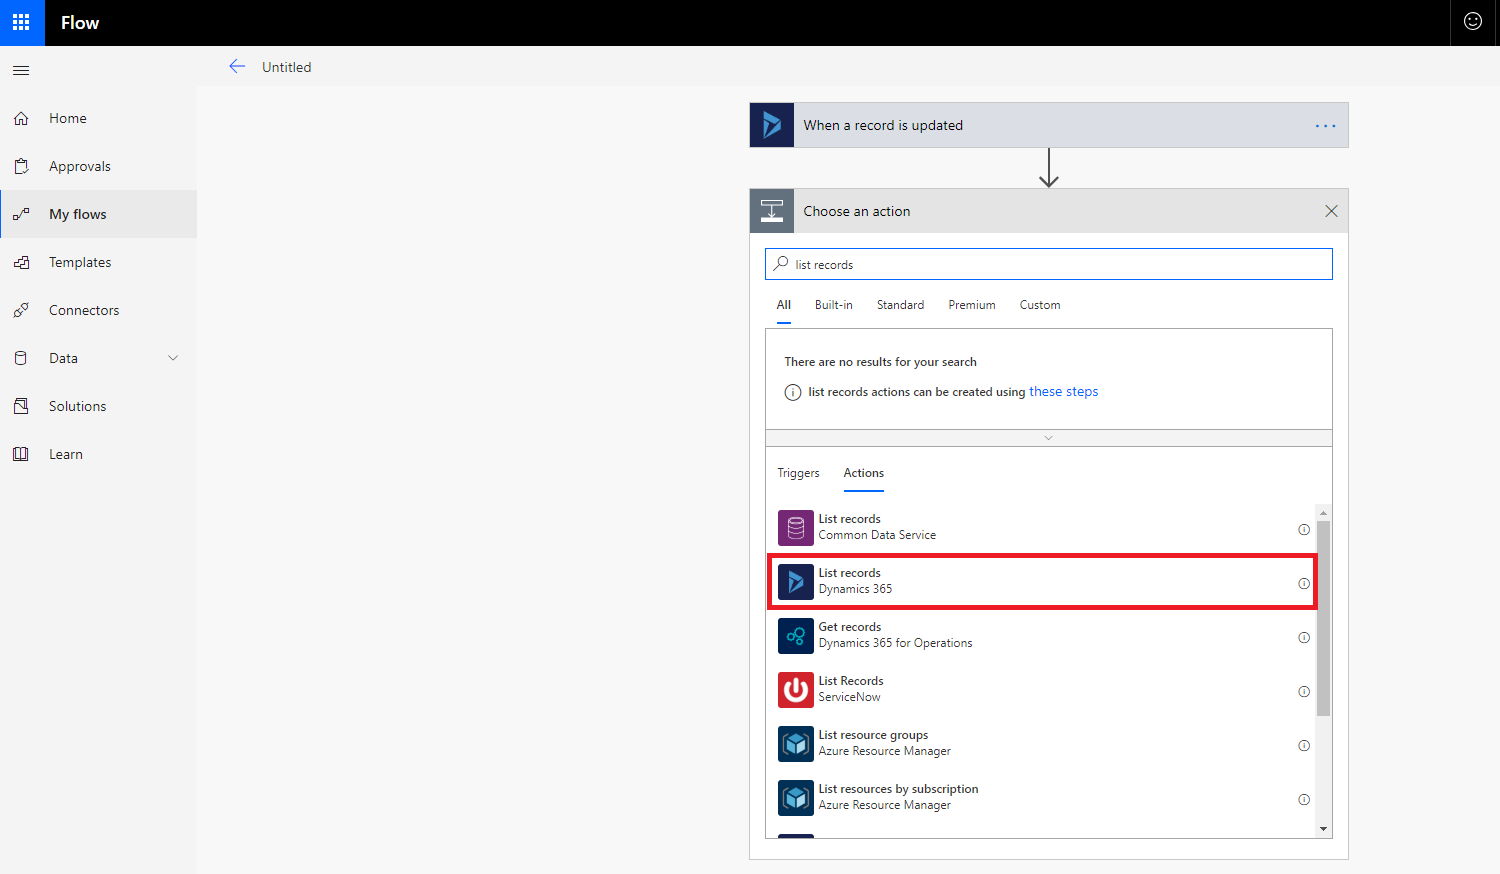 How to select list records in Microsoft Flow